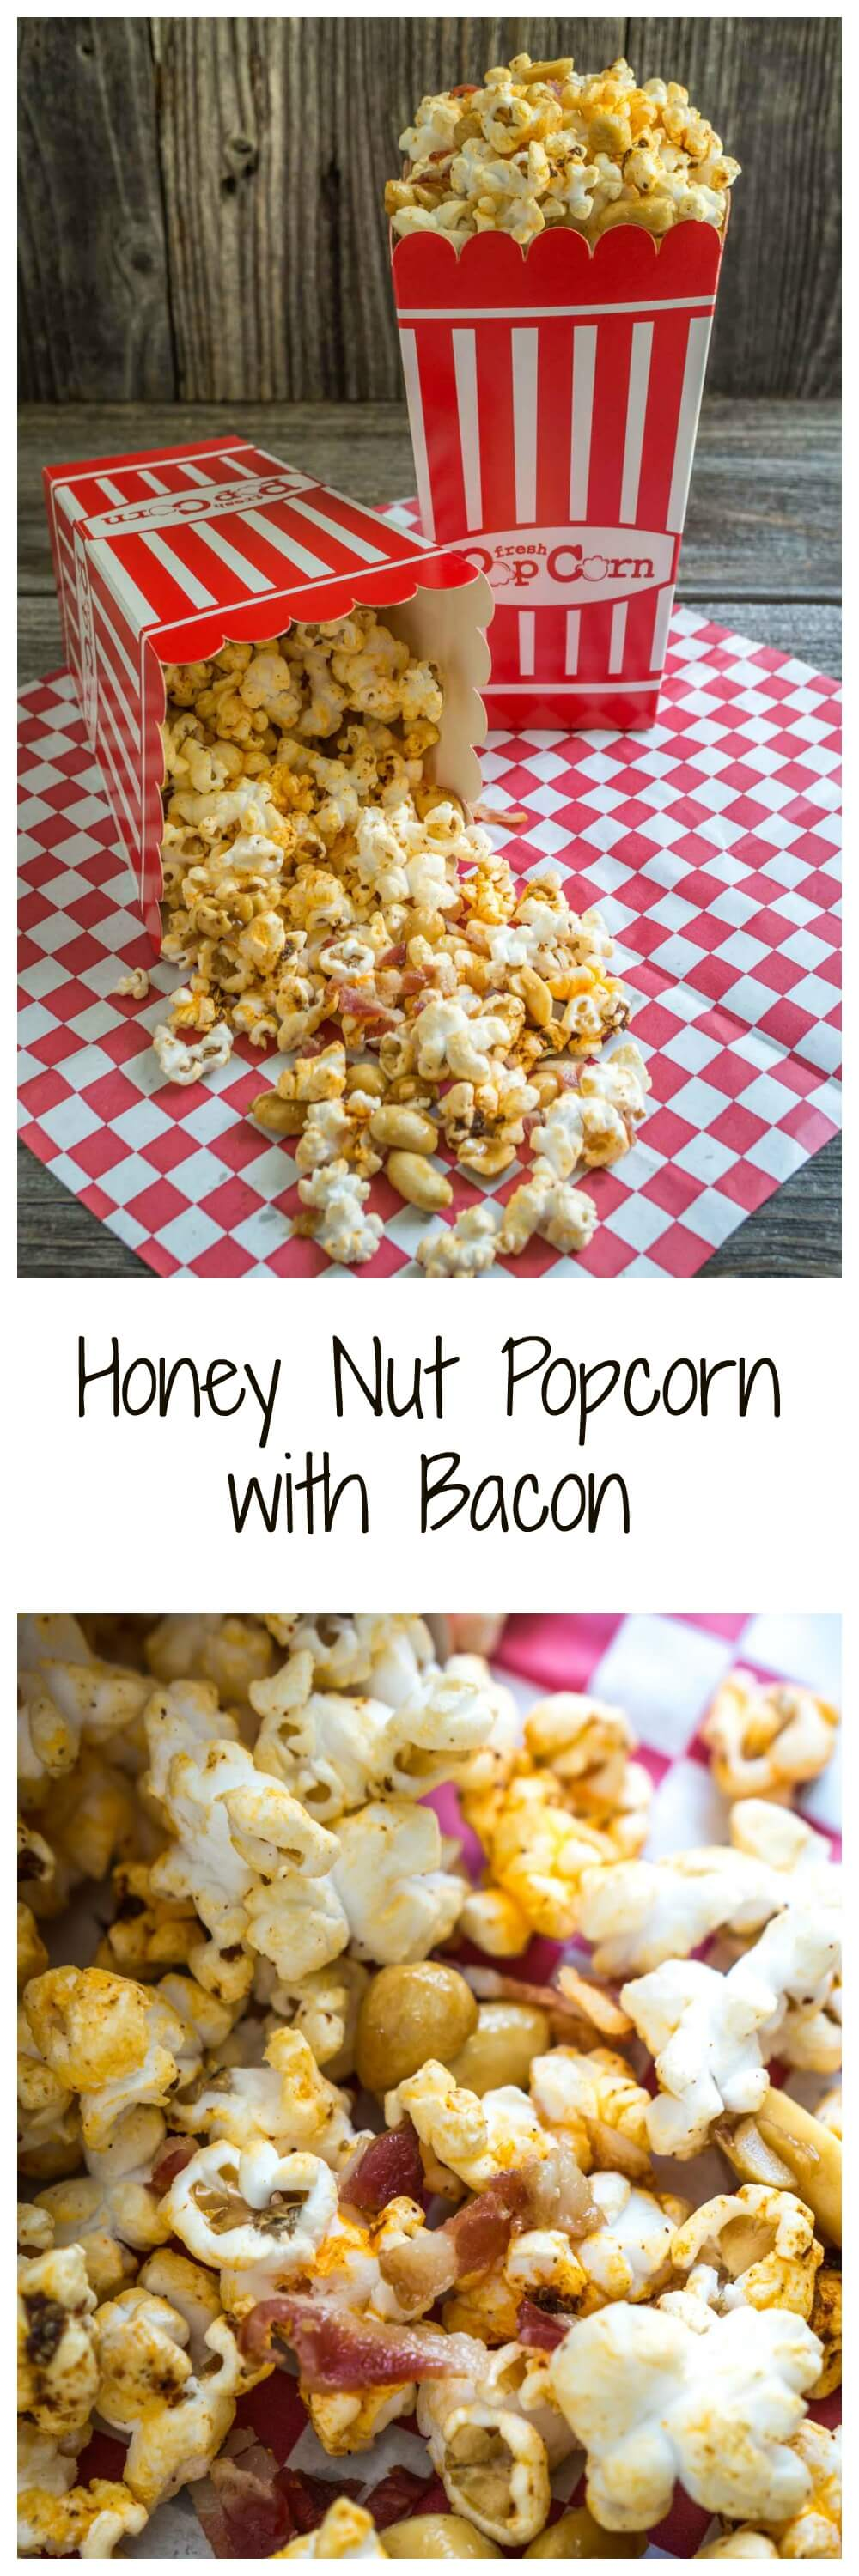 Honey Nut Popcorn with Bacon is the perfect mix of sweet, salty, smokey and crunchy.  It's quick to put together and delicious to eat.  Make plenty because it has a way of disappearing!